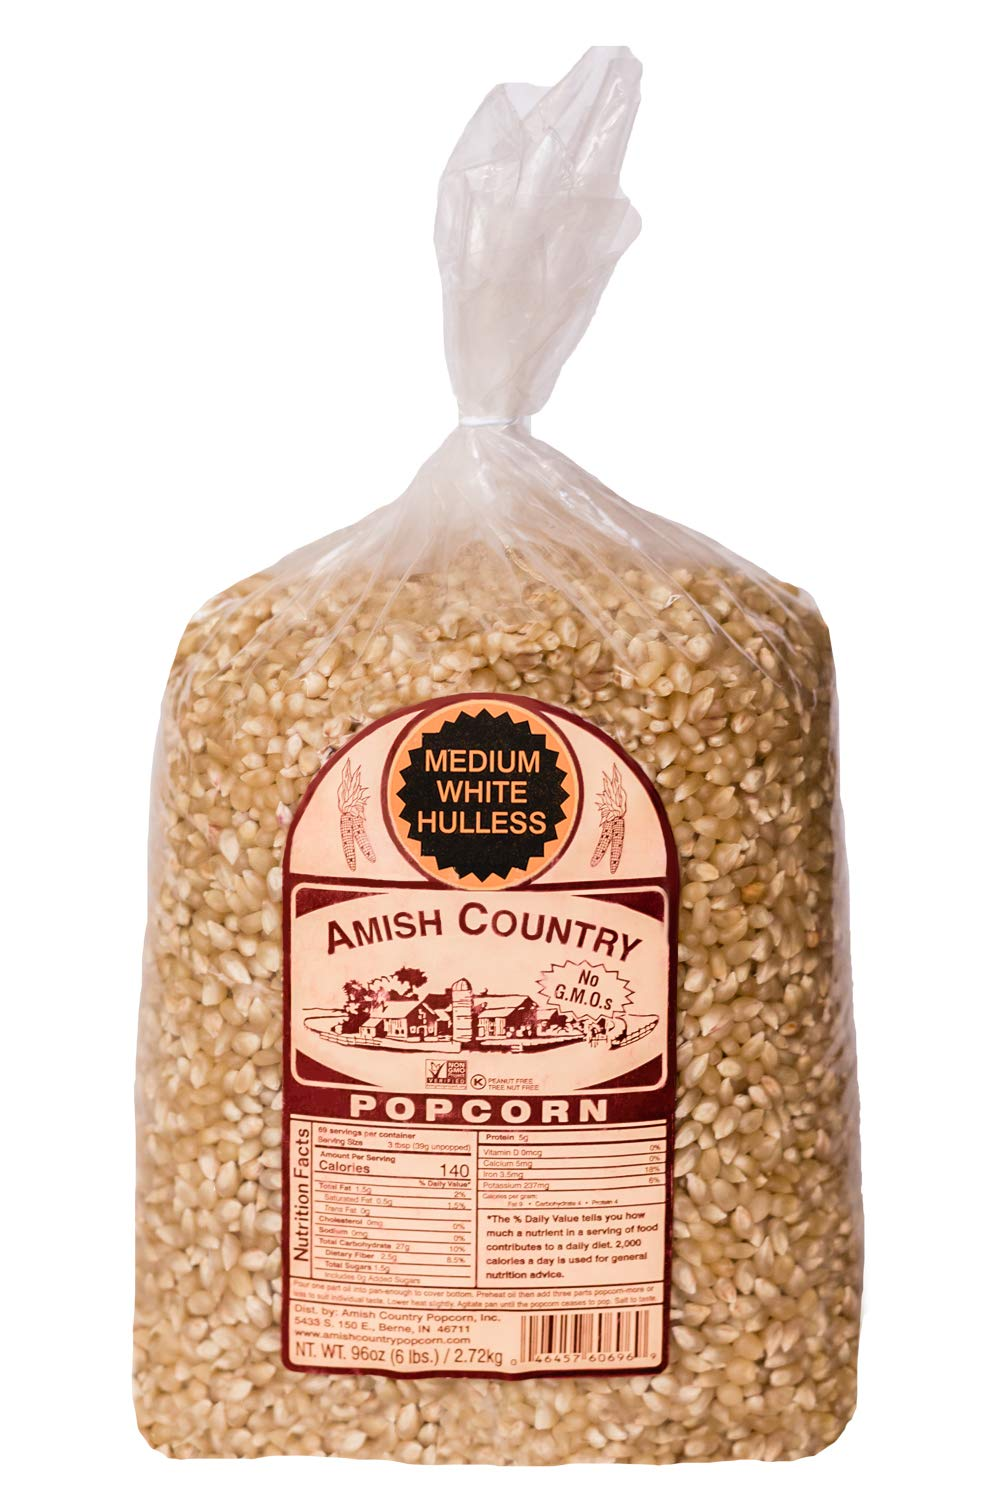 Amish Country Popcorn - Medium White (6 Pound Bag) Popcorn Kernels with Recipe Guide, Old Fashioned, Non GMO, Gluten Free, Microwaveable, Stovetop and Air Popper Friendly by Amish Country Popcorn